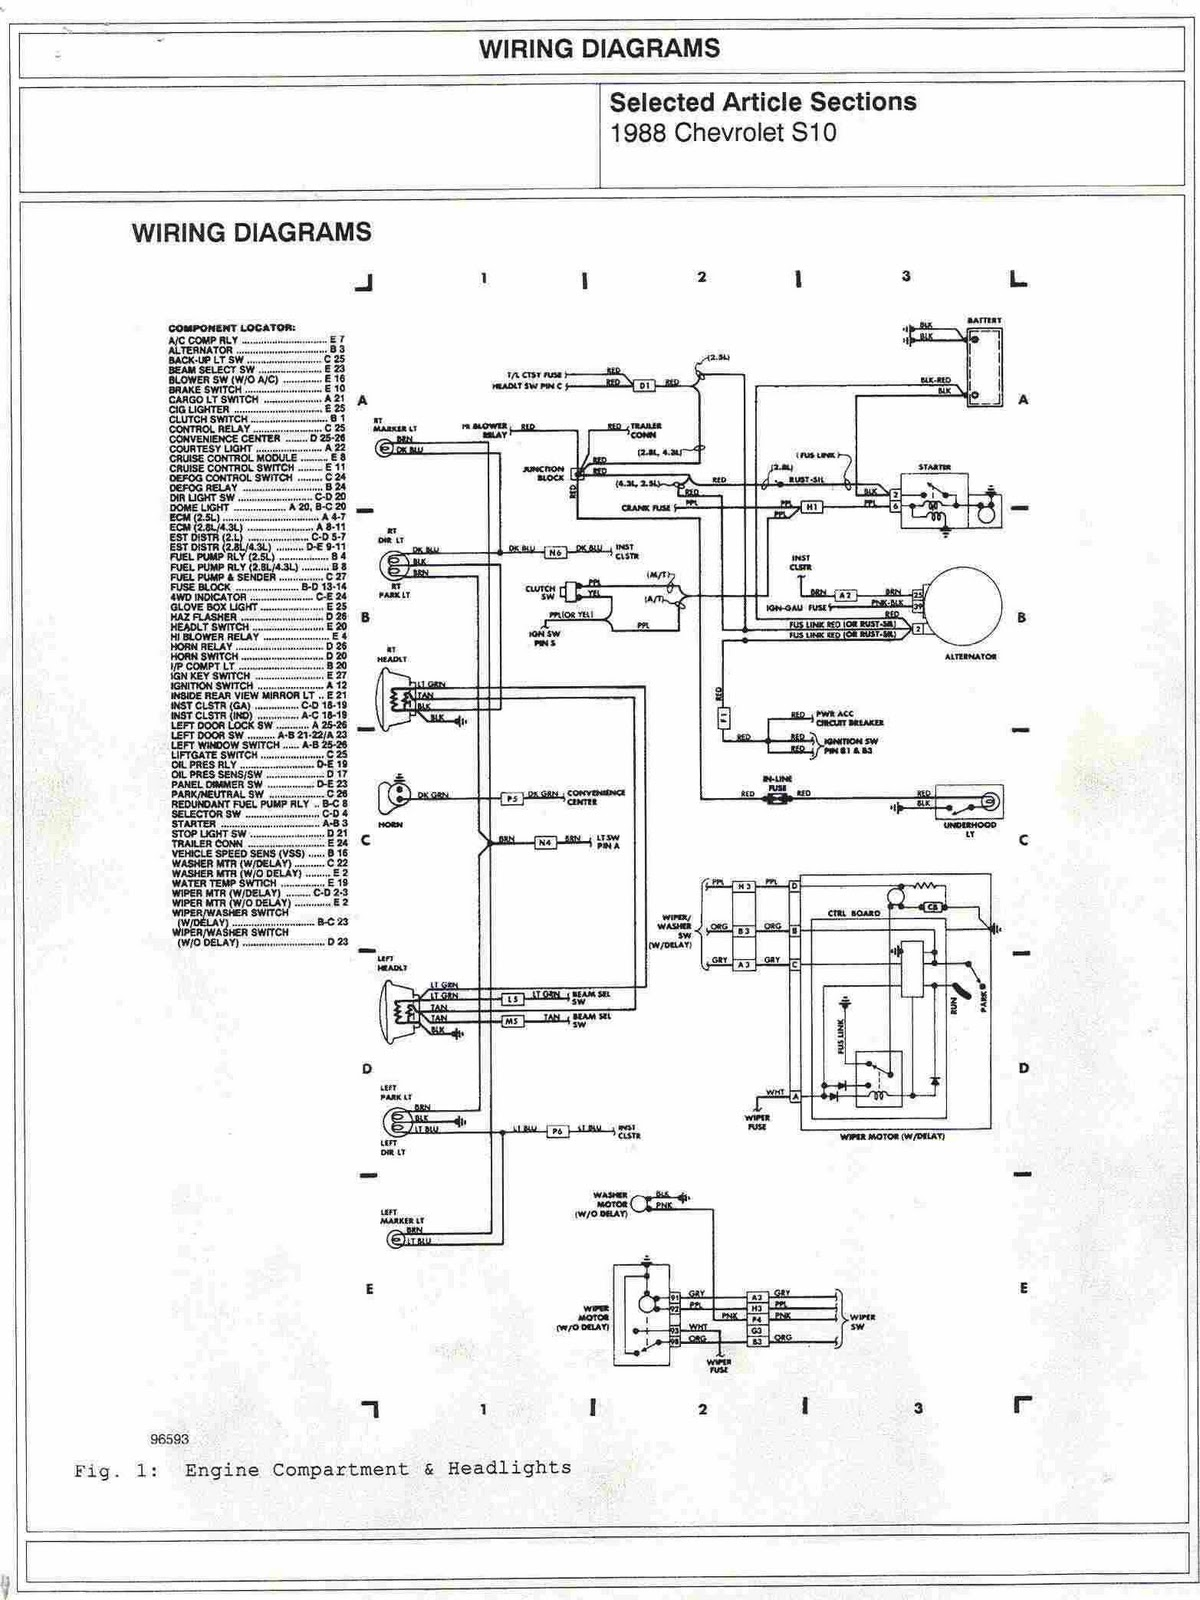 1993 Cadillac Eldorado Wiring Diagrams Library Deville Fuse Box Diagram Simonand 1988 Chevrolet S10 Engine Compartment And